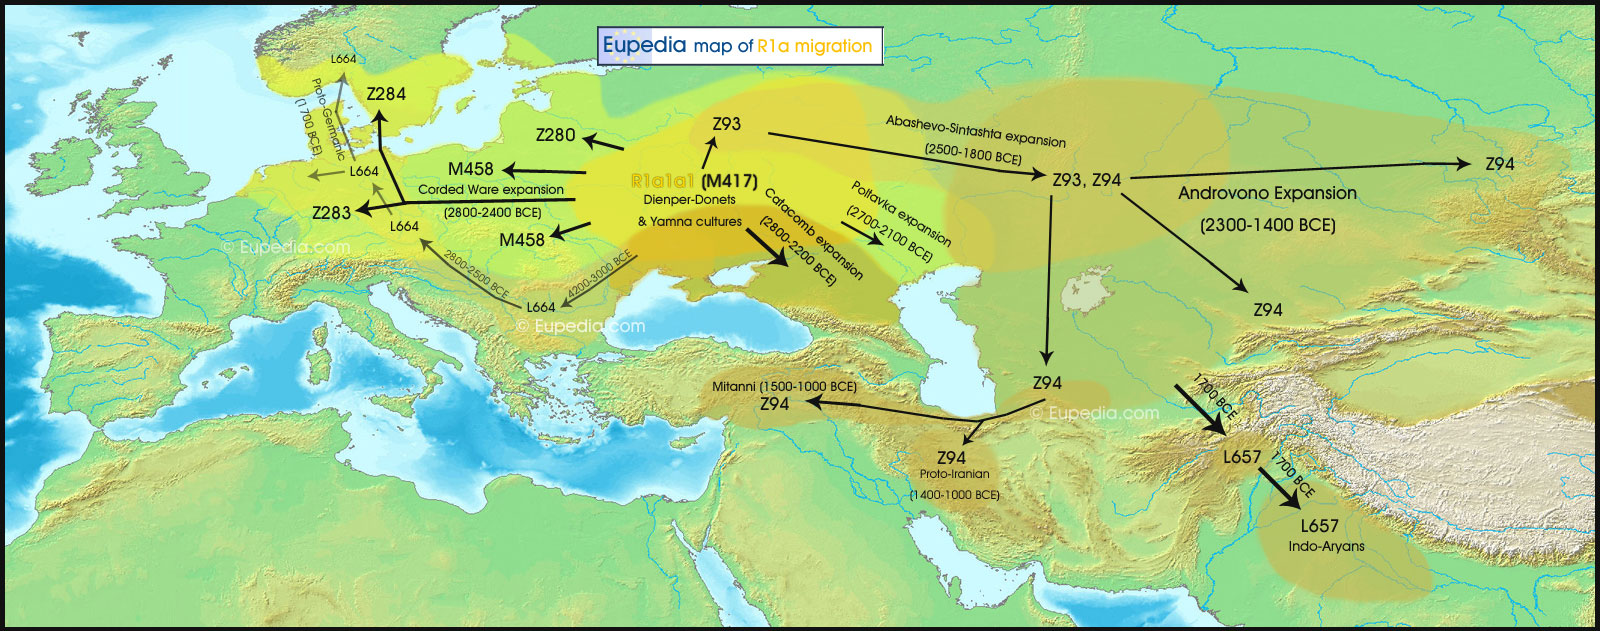 Migration map of Y-haplogroup R1a from the Neolithic to the late Bronze Age - Eupedia